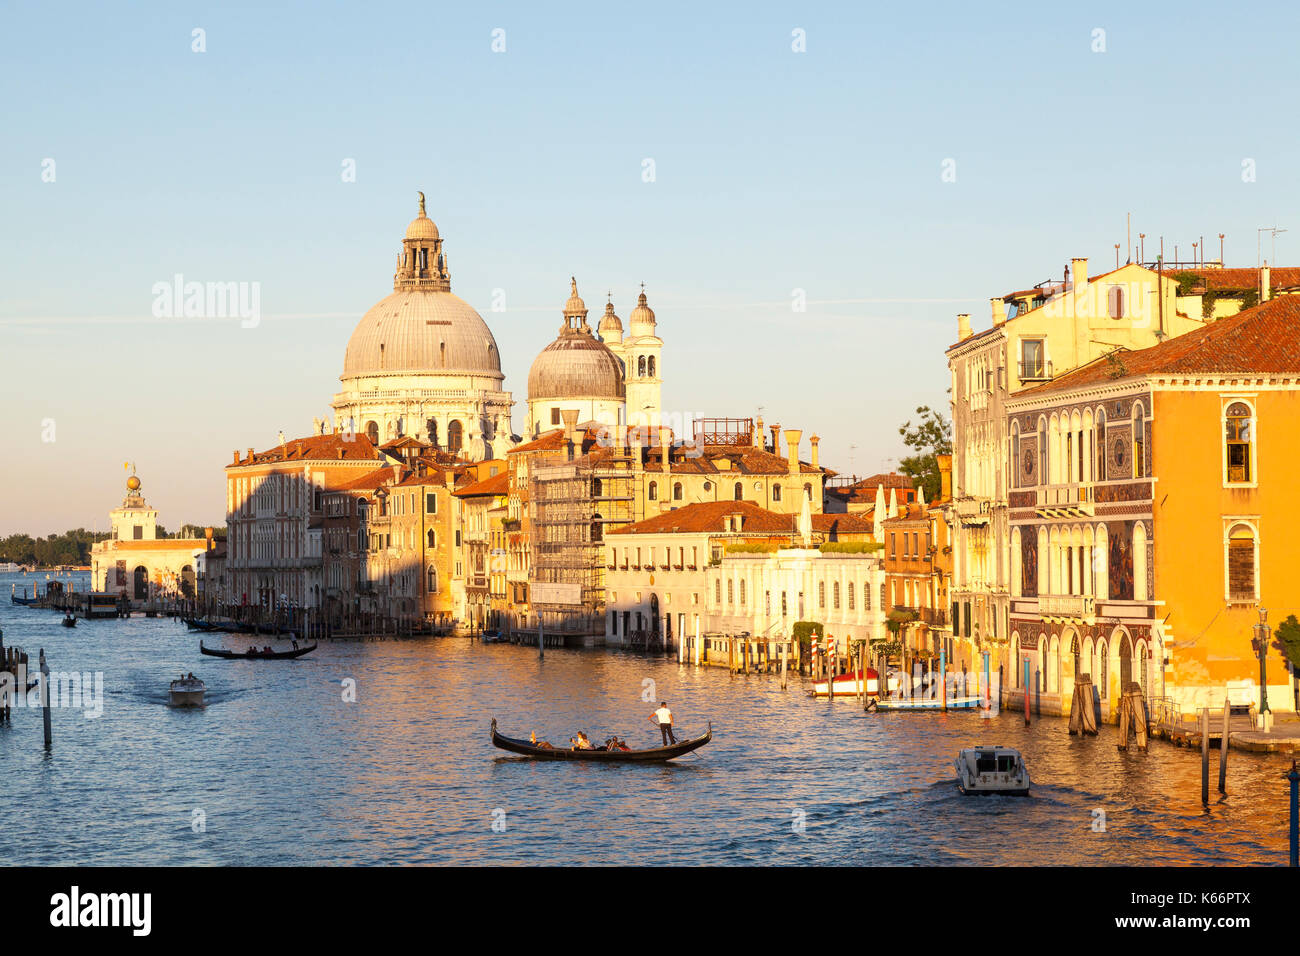 Sunset on the Grand Canal and Basilica Santa Maria della Salute, Venice, Italy with  a gondola and boats on the canal. Warm golden hour light. - Stock Image